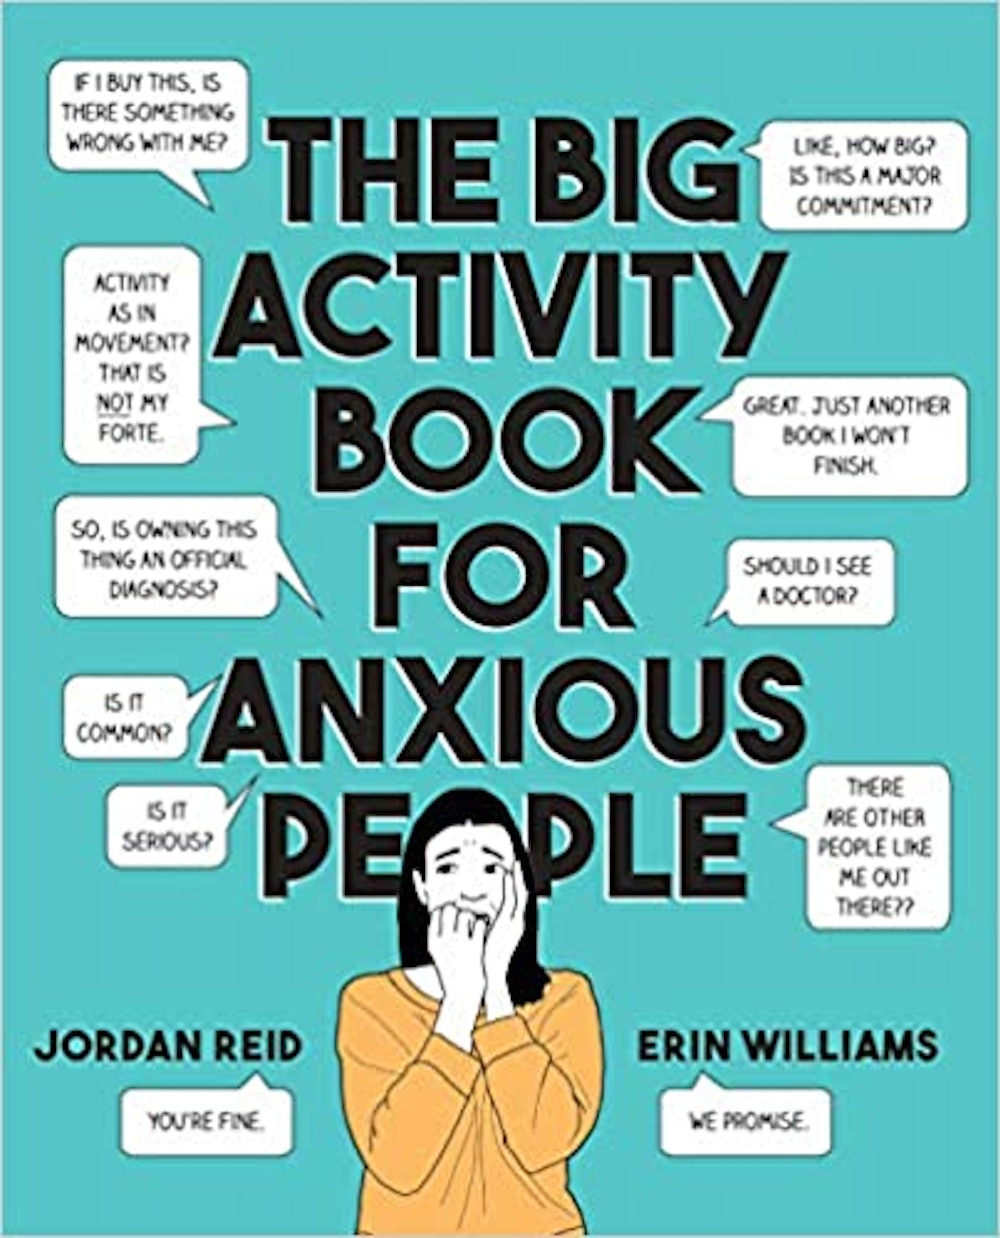 The Big Activity Book for Anxious People